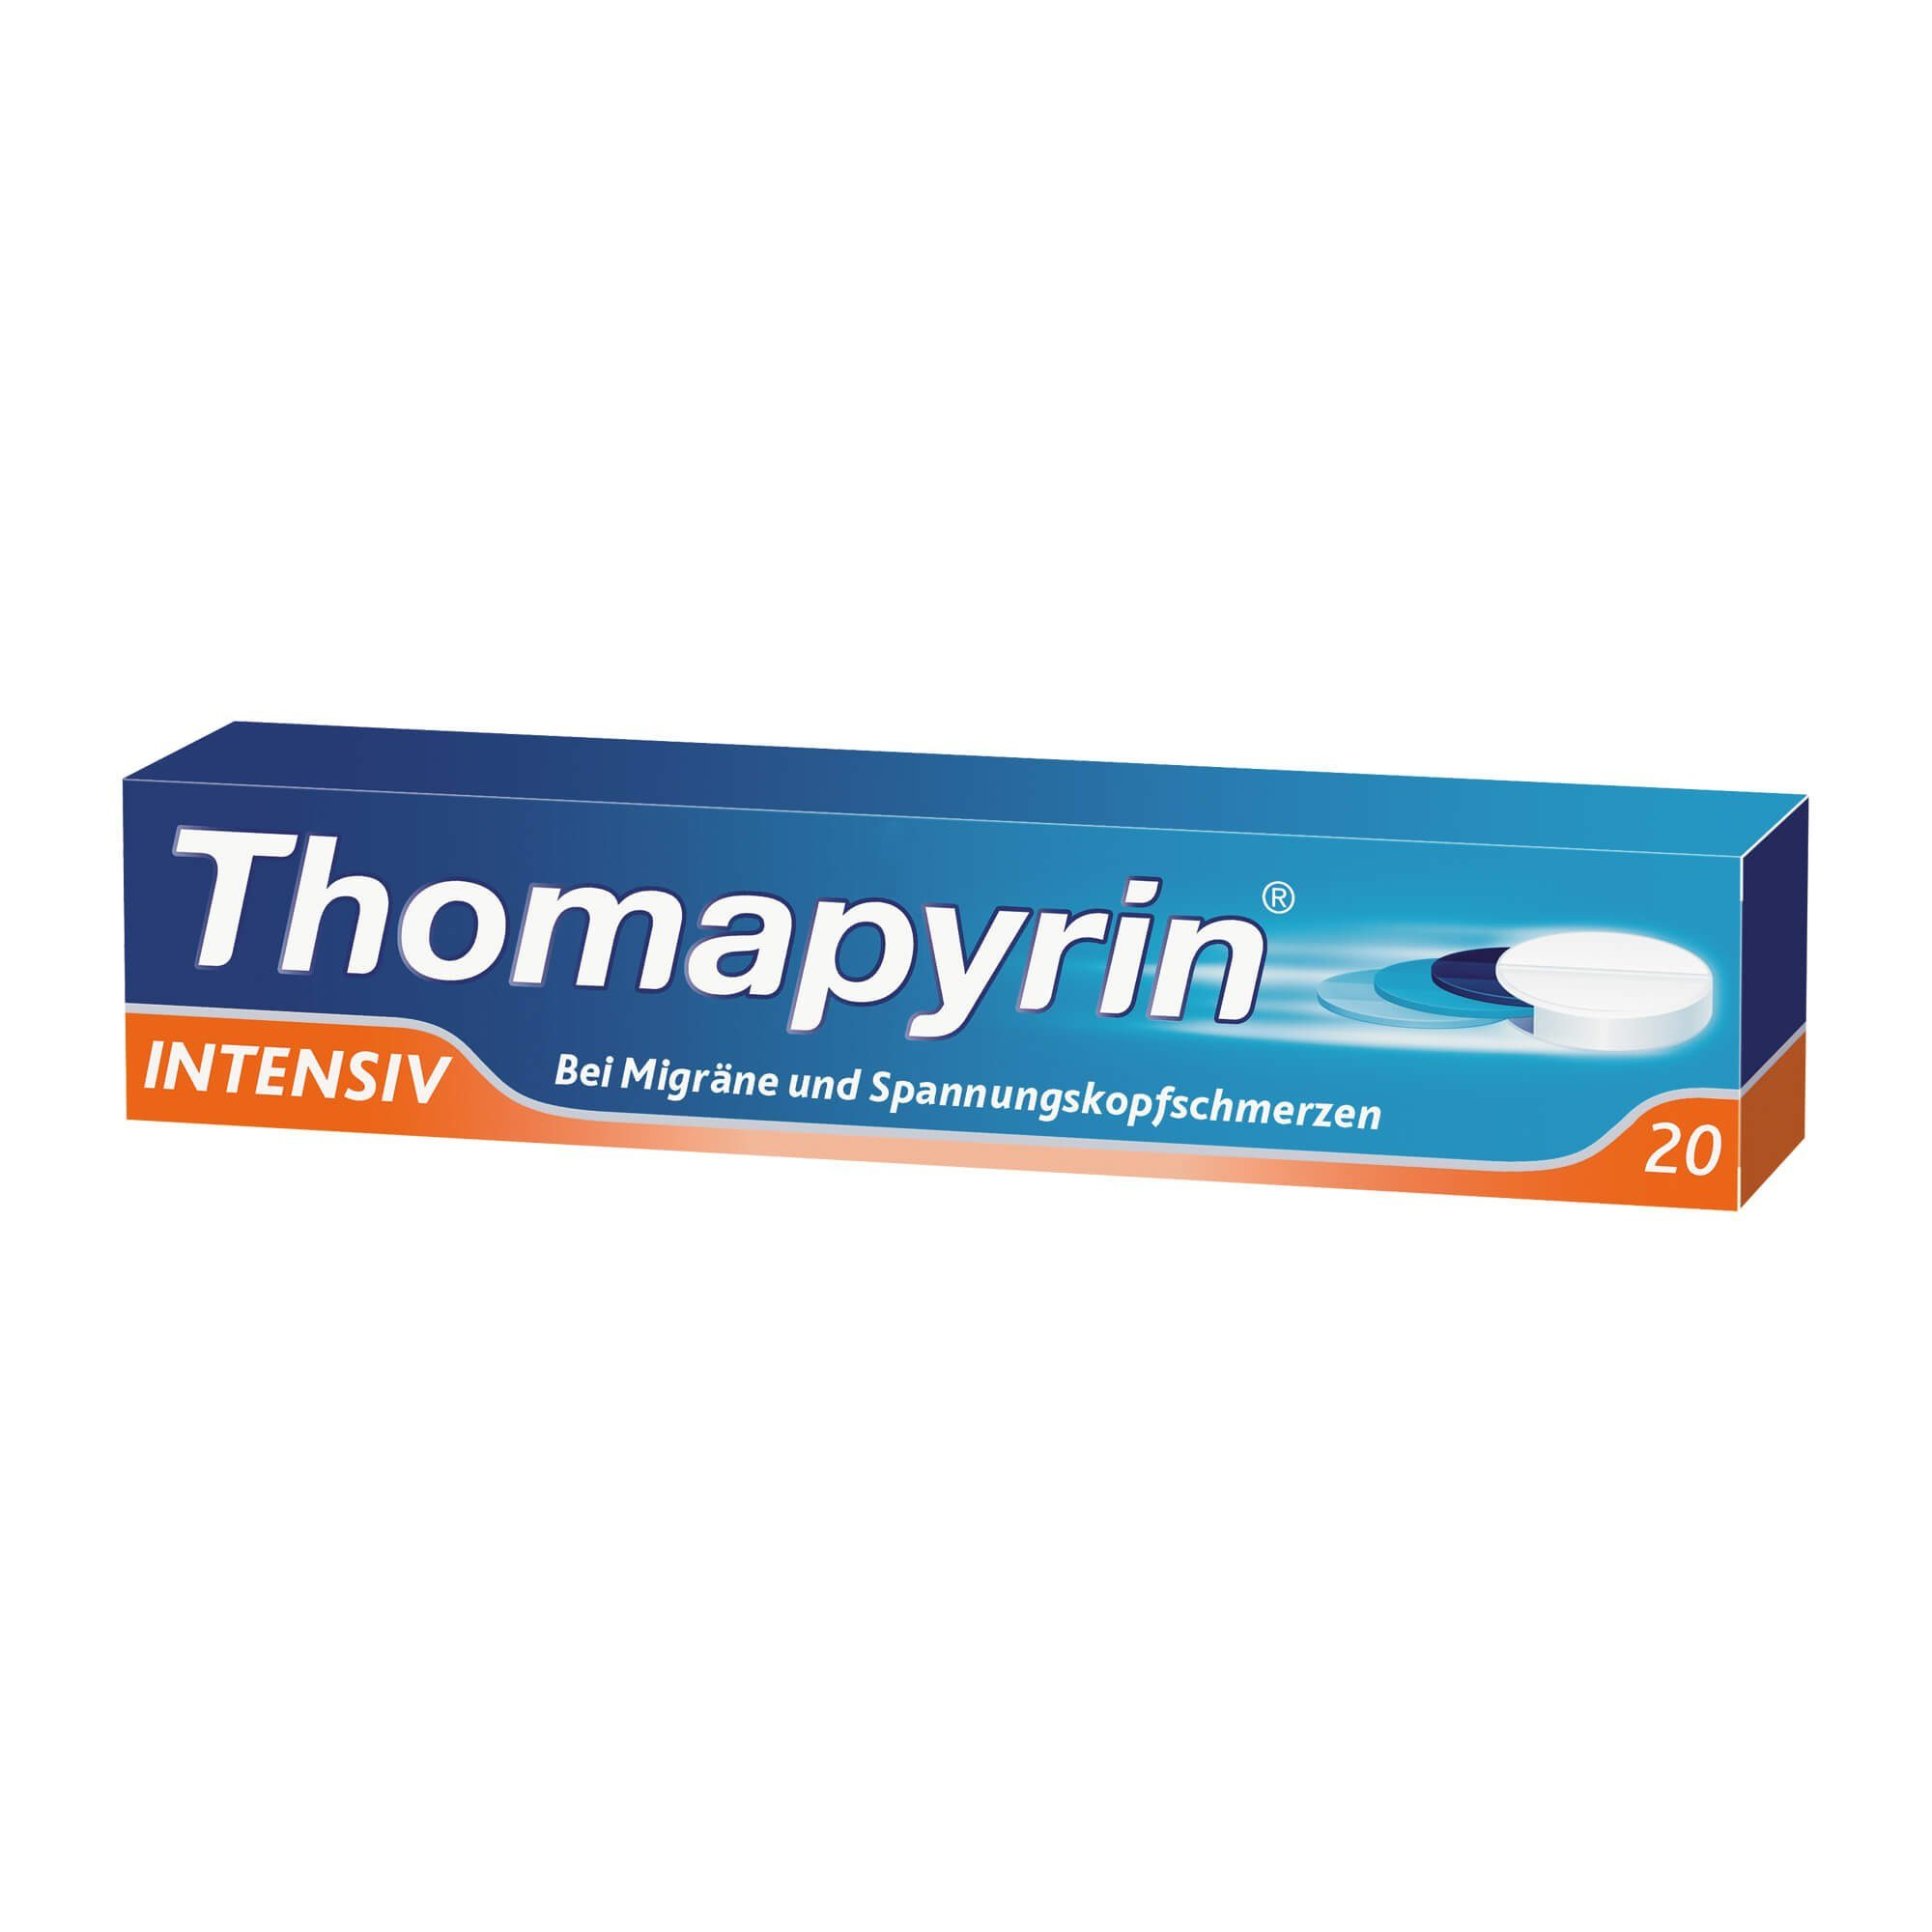 Thomapyrin intensiv Tabletten (, 20 St)